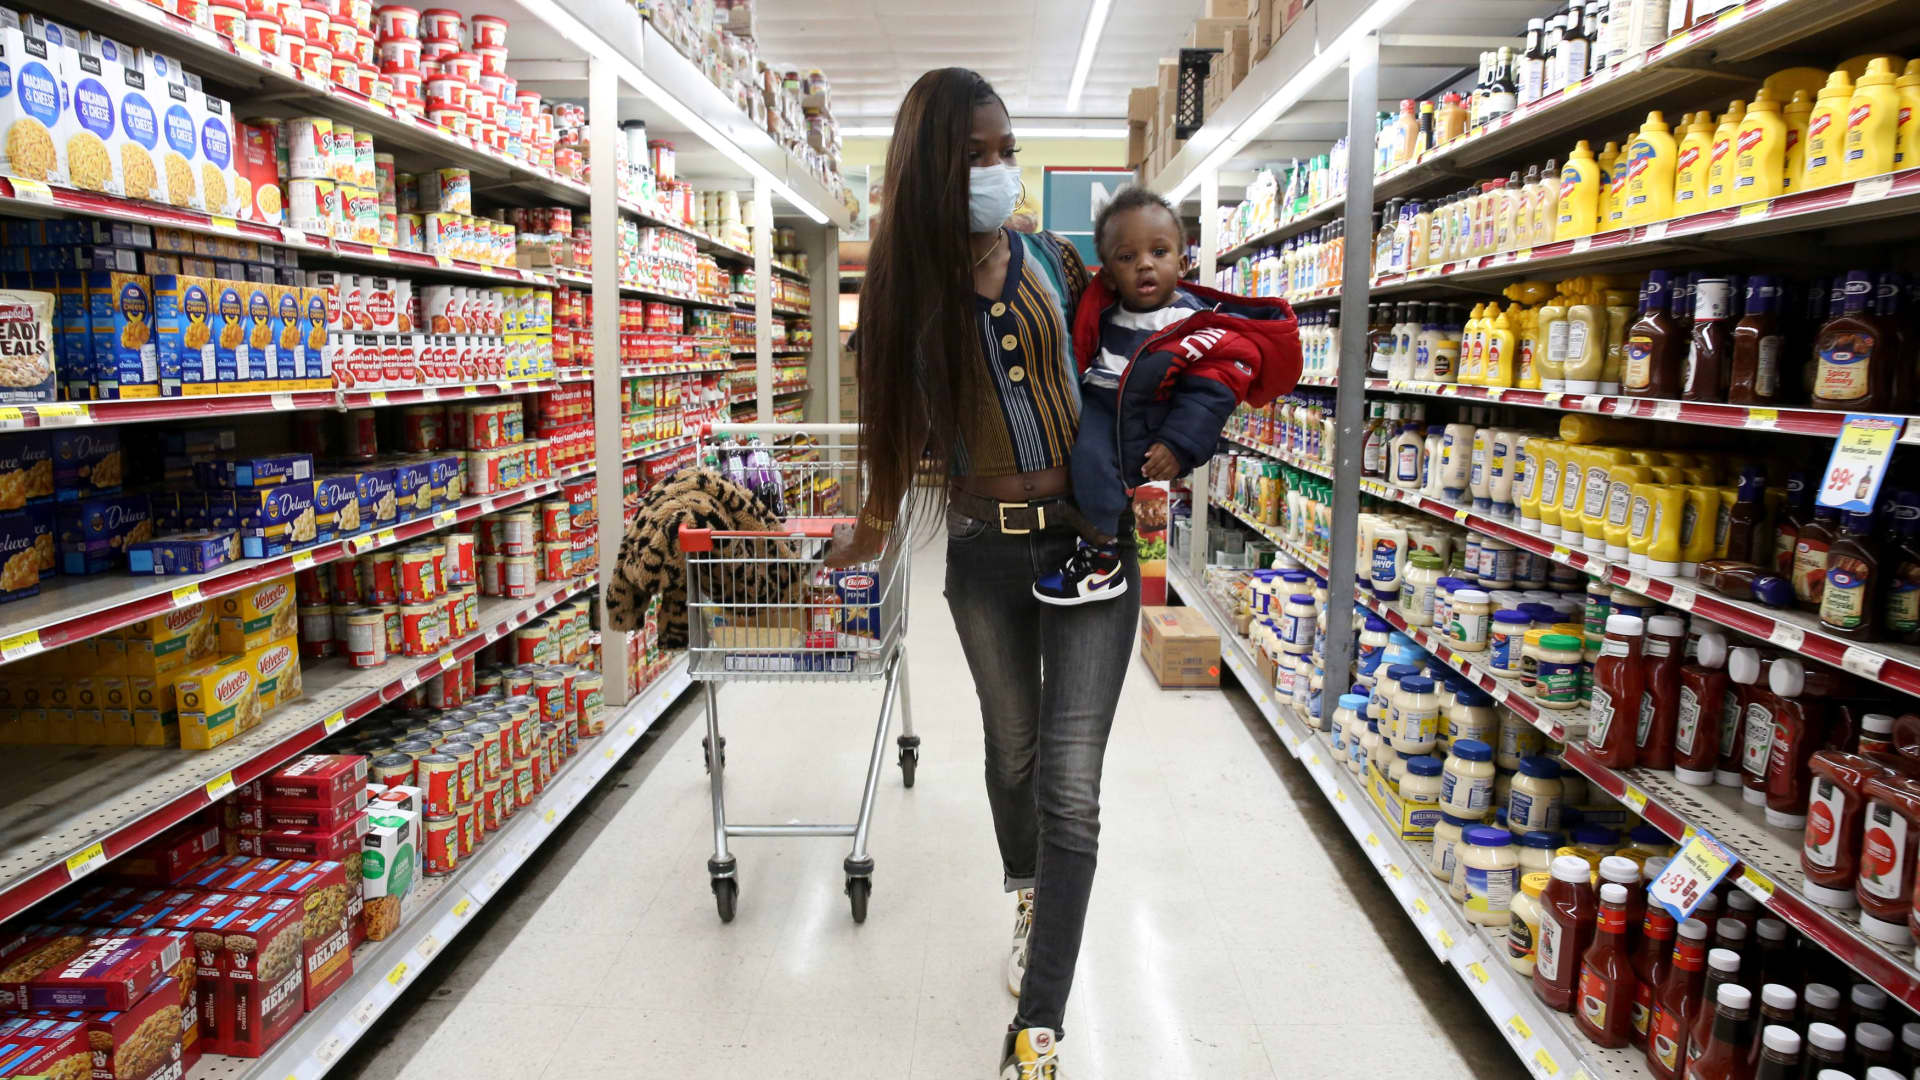 Mic'Kale Smith, who works as a security guard but has had to take time off to care for her son during the coronavirus disease (COVID-19) outbreak, wears a face mask as she shops with her son Da'Mier at the Tiger Market in Oxon Hill, Maryland, May 20, 2020.